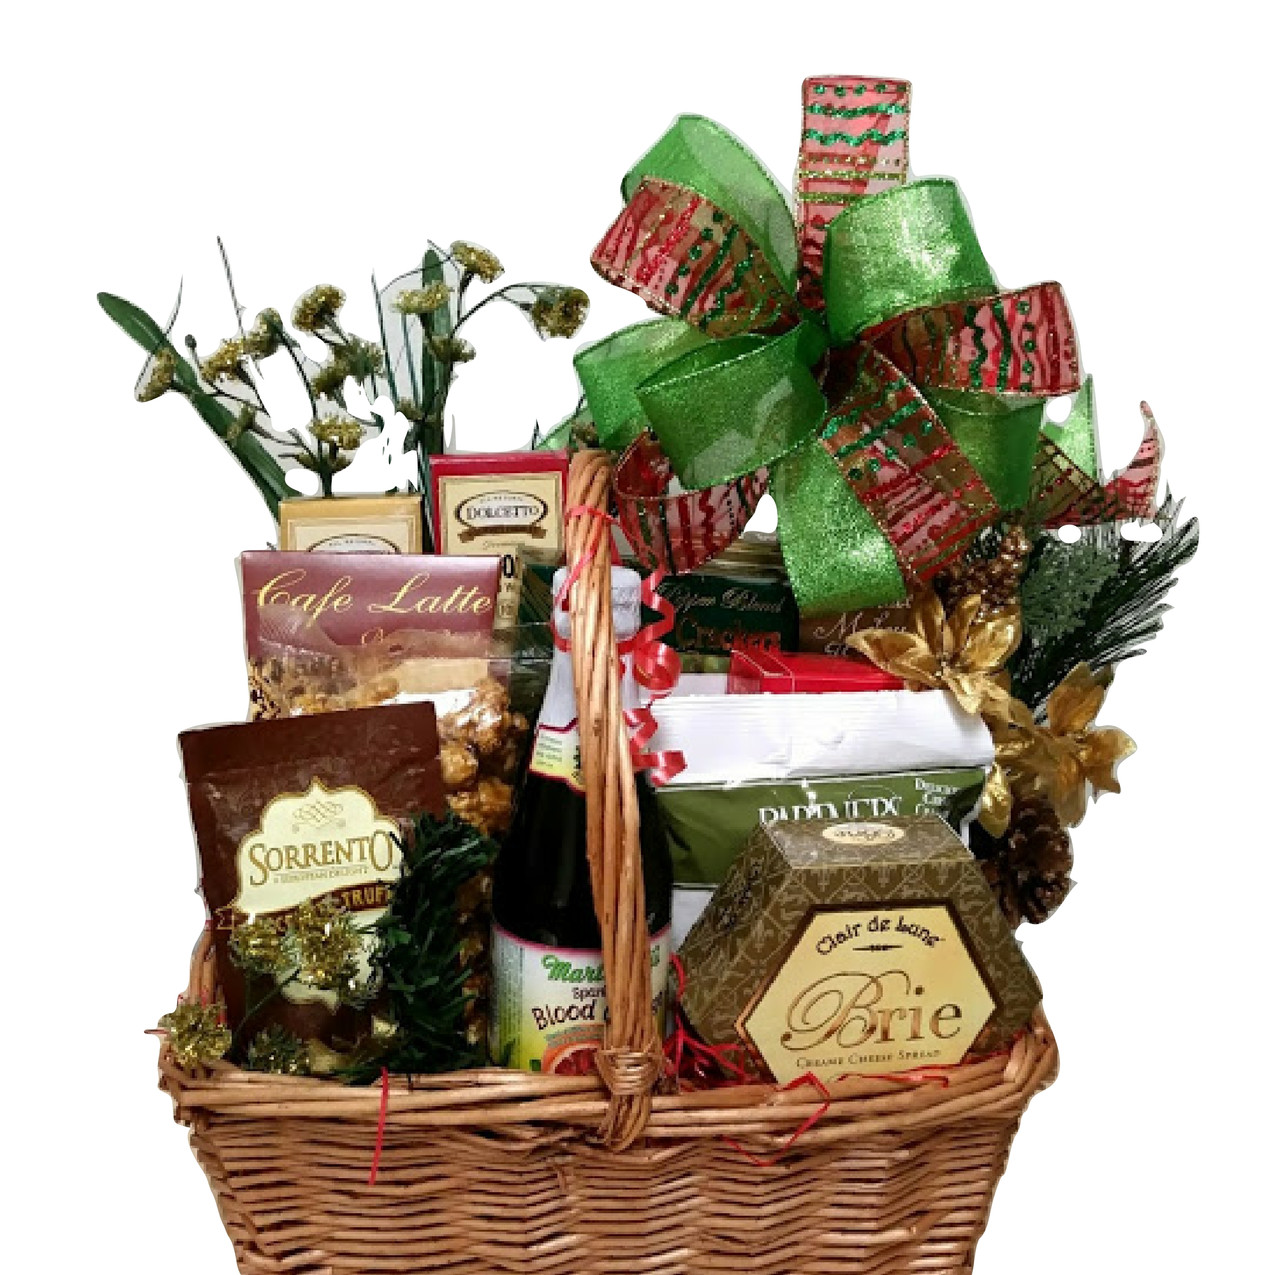 Christmas Blessings This gift basket is complete with a variety of gourmet snacks such as cocoa, cheese, coffee, cookies, crackers, chocolate wafers, popcorn, bruschetta and more!  ($50.00, shown)  ORDER NOW!